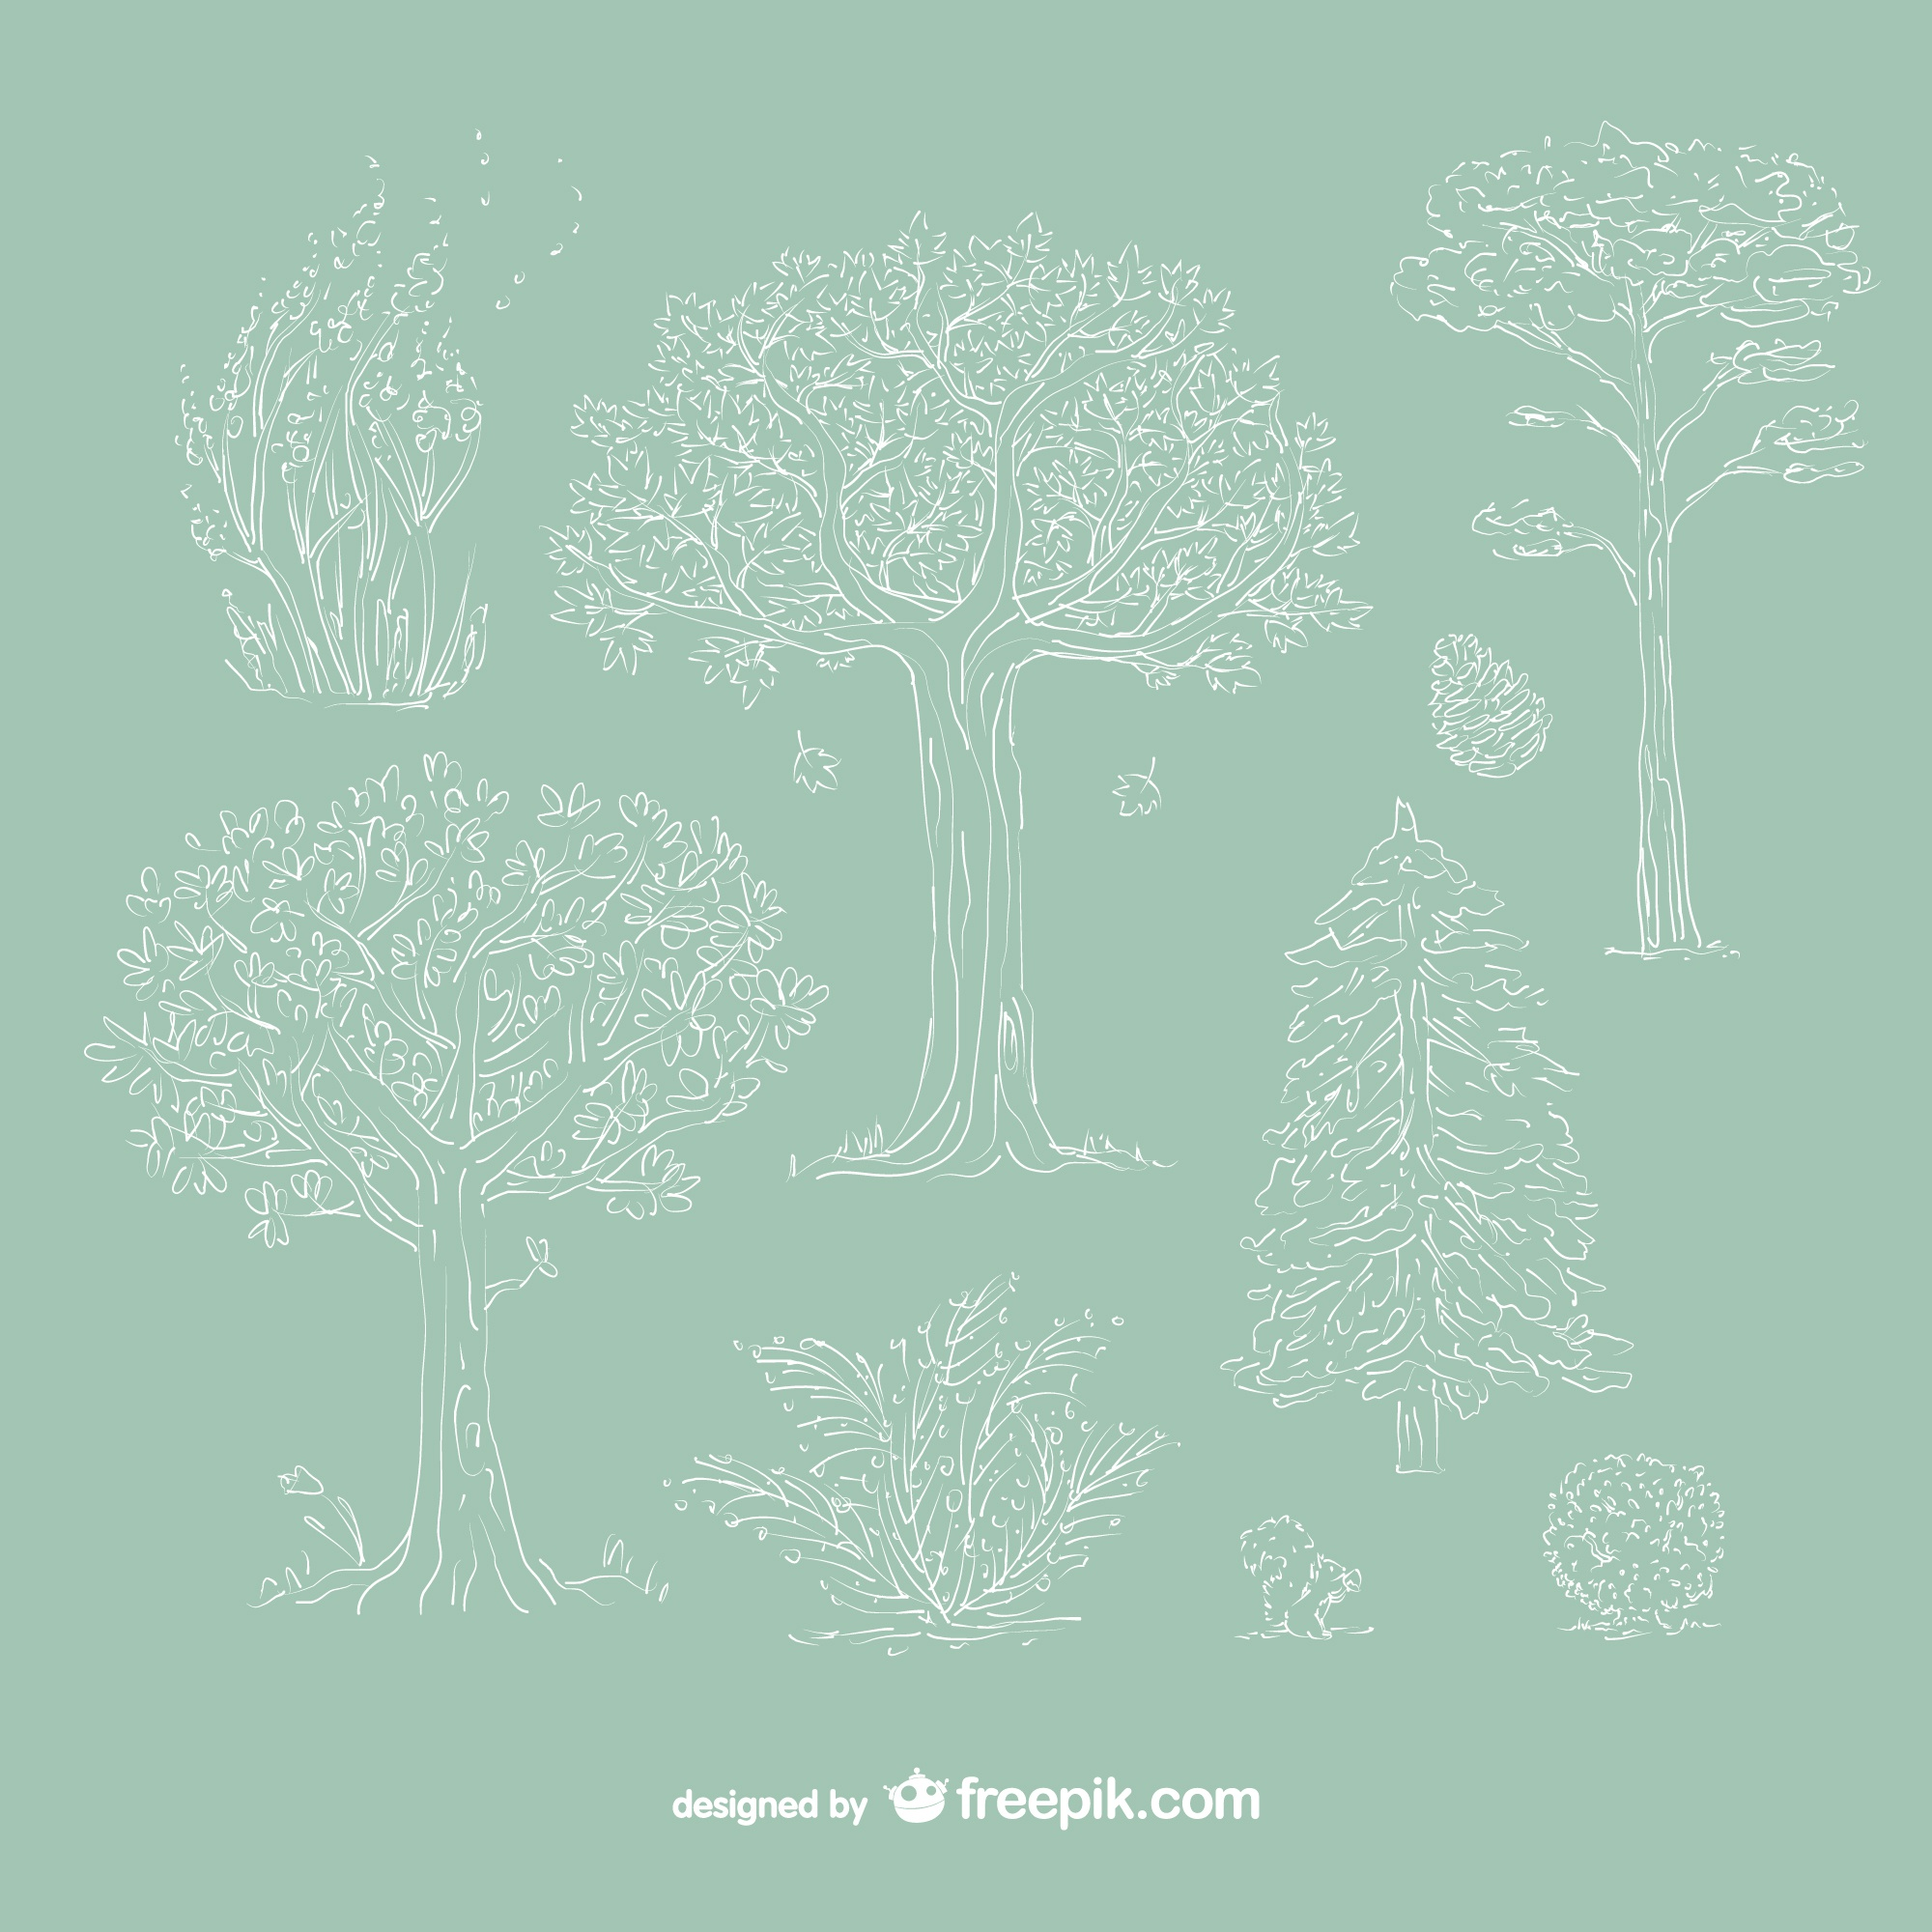 Hand drawn white trees